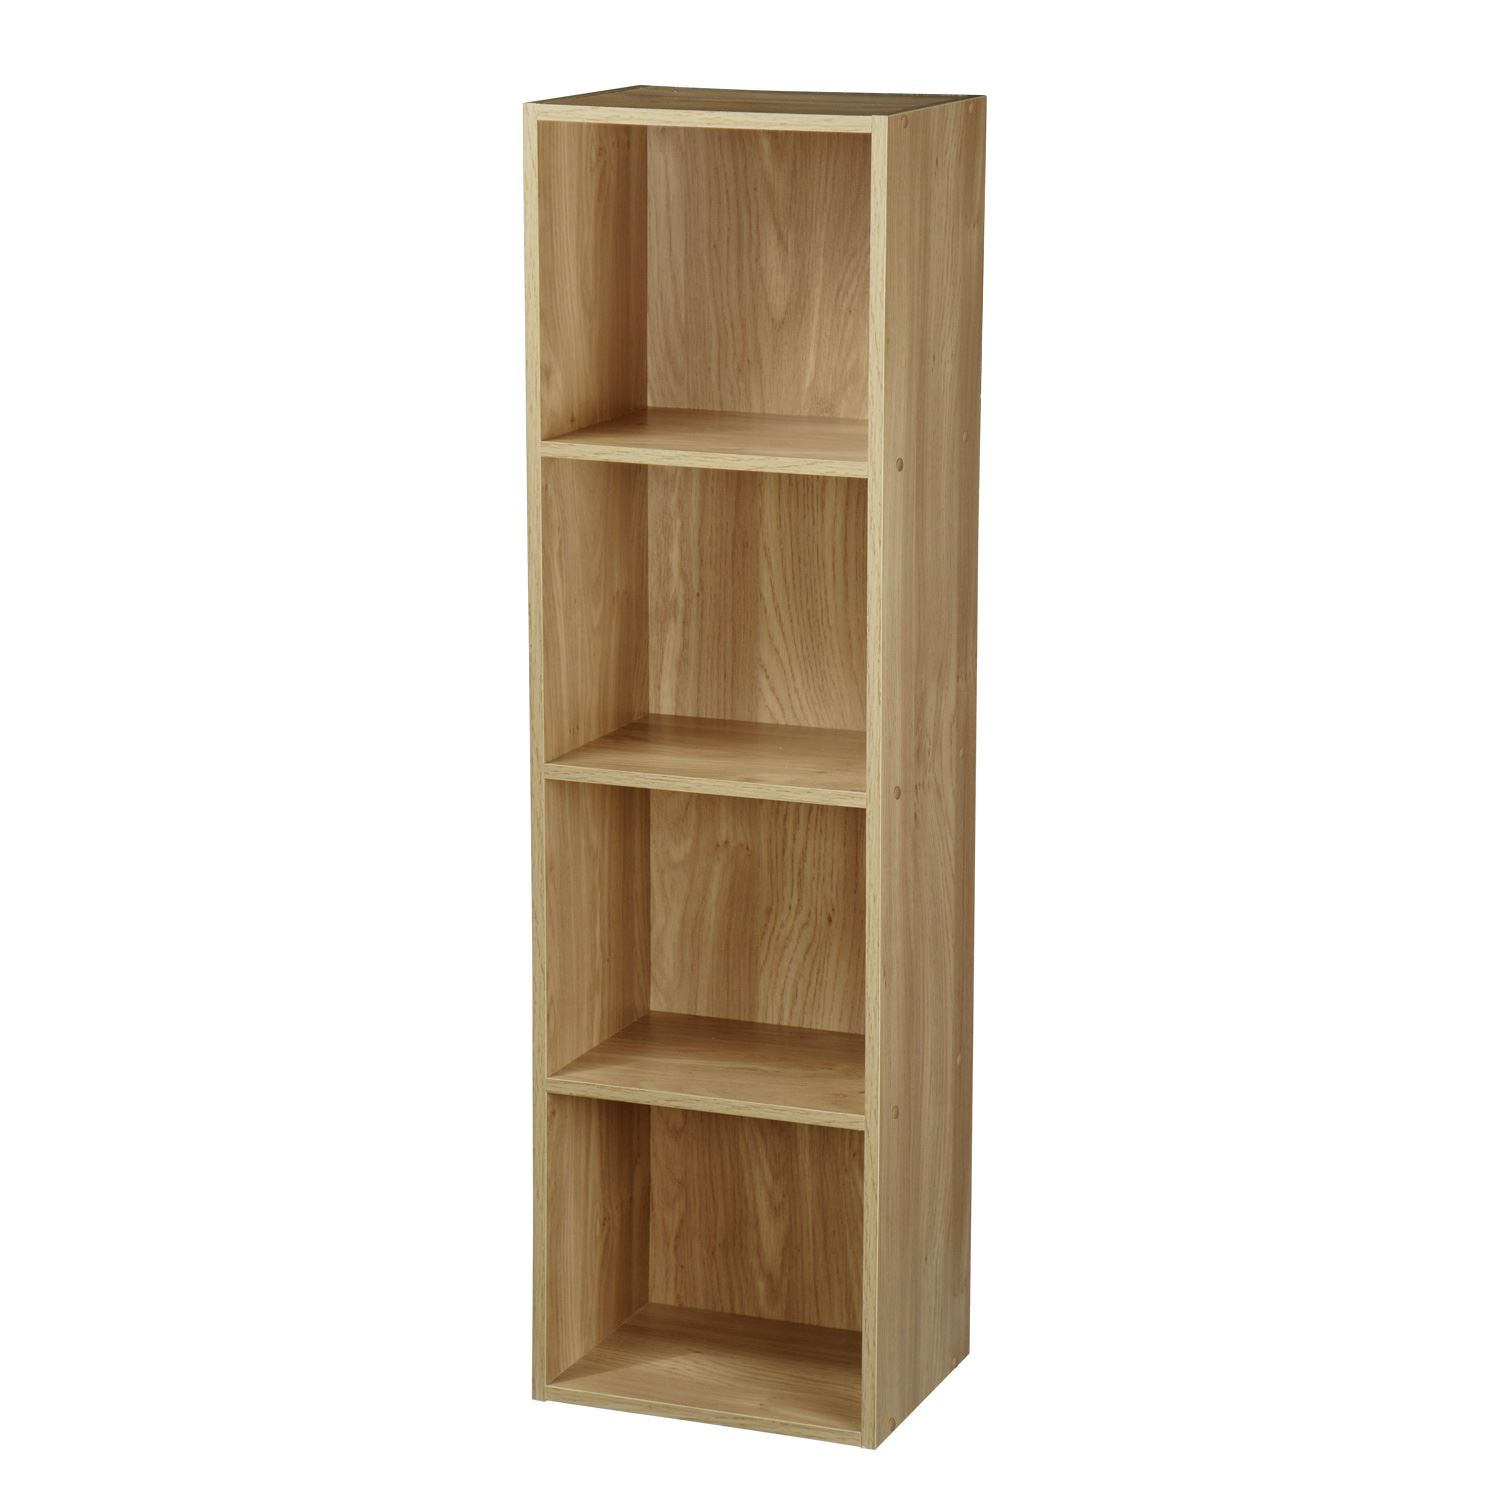 Wood Storage Cabinet With Shelves ~ Tier wooden bookcase shelving display storage